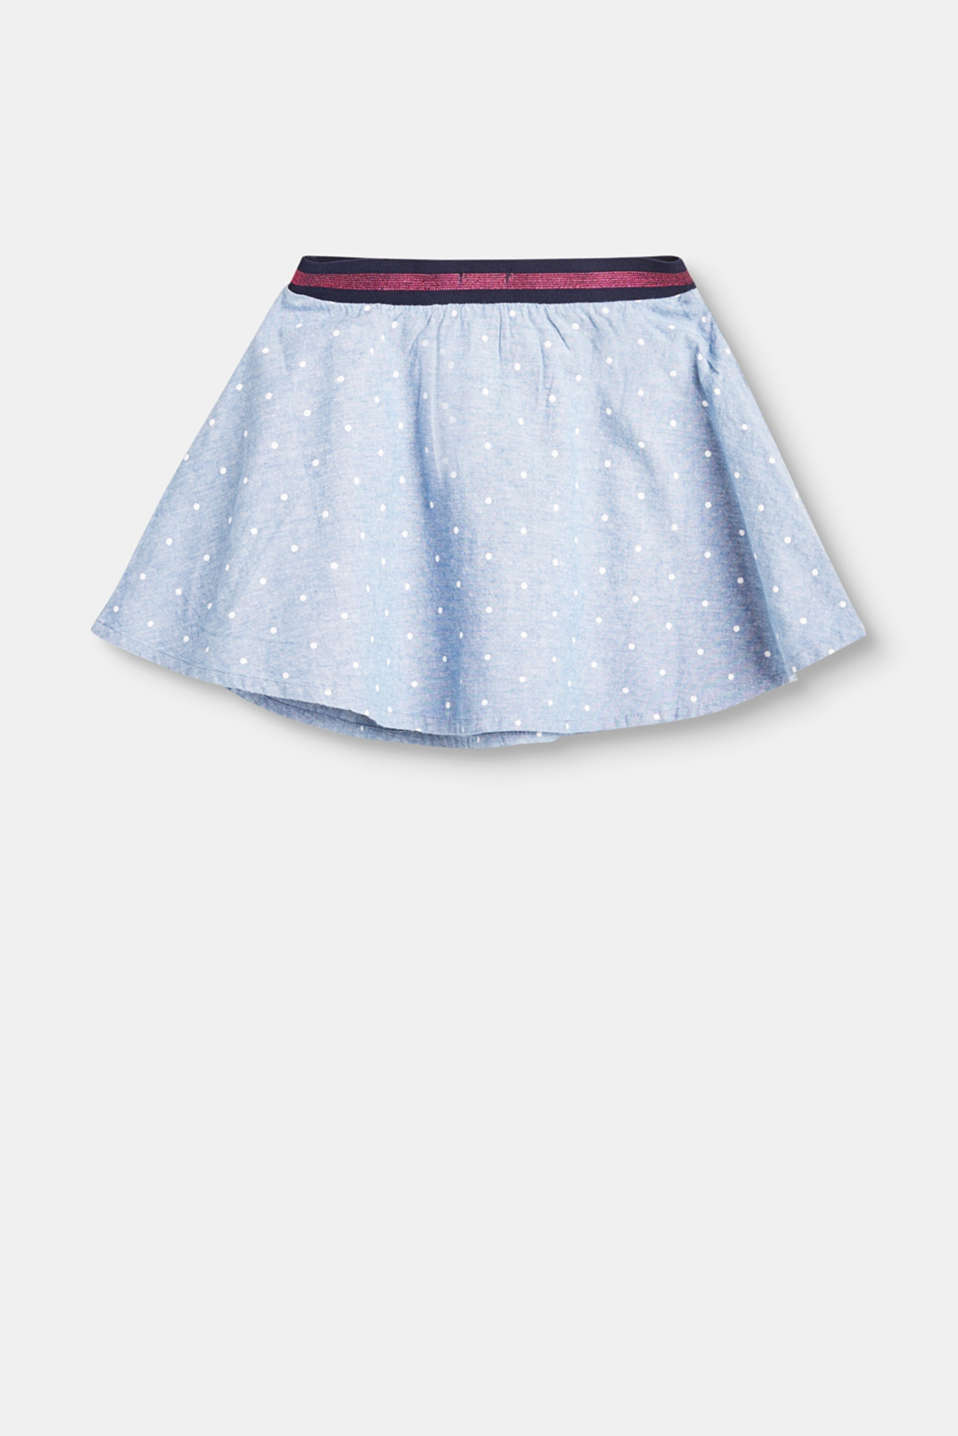 Chambray skirt + glitter waistband